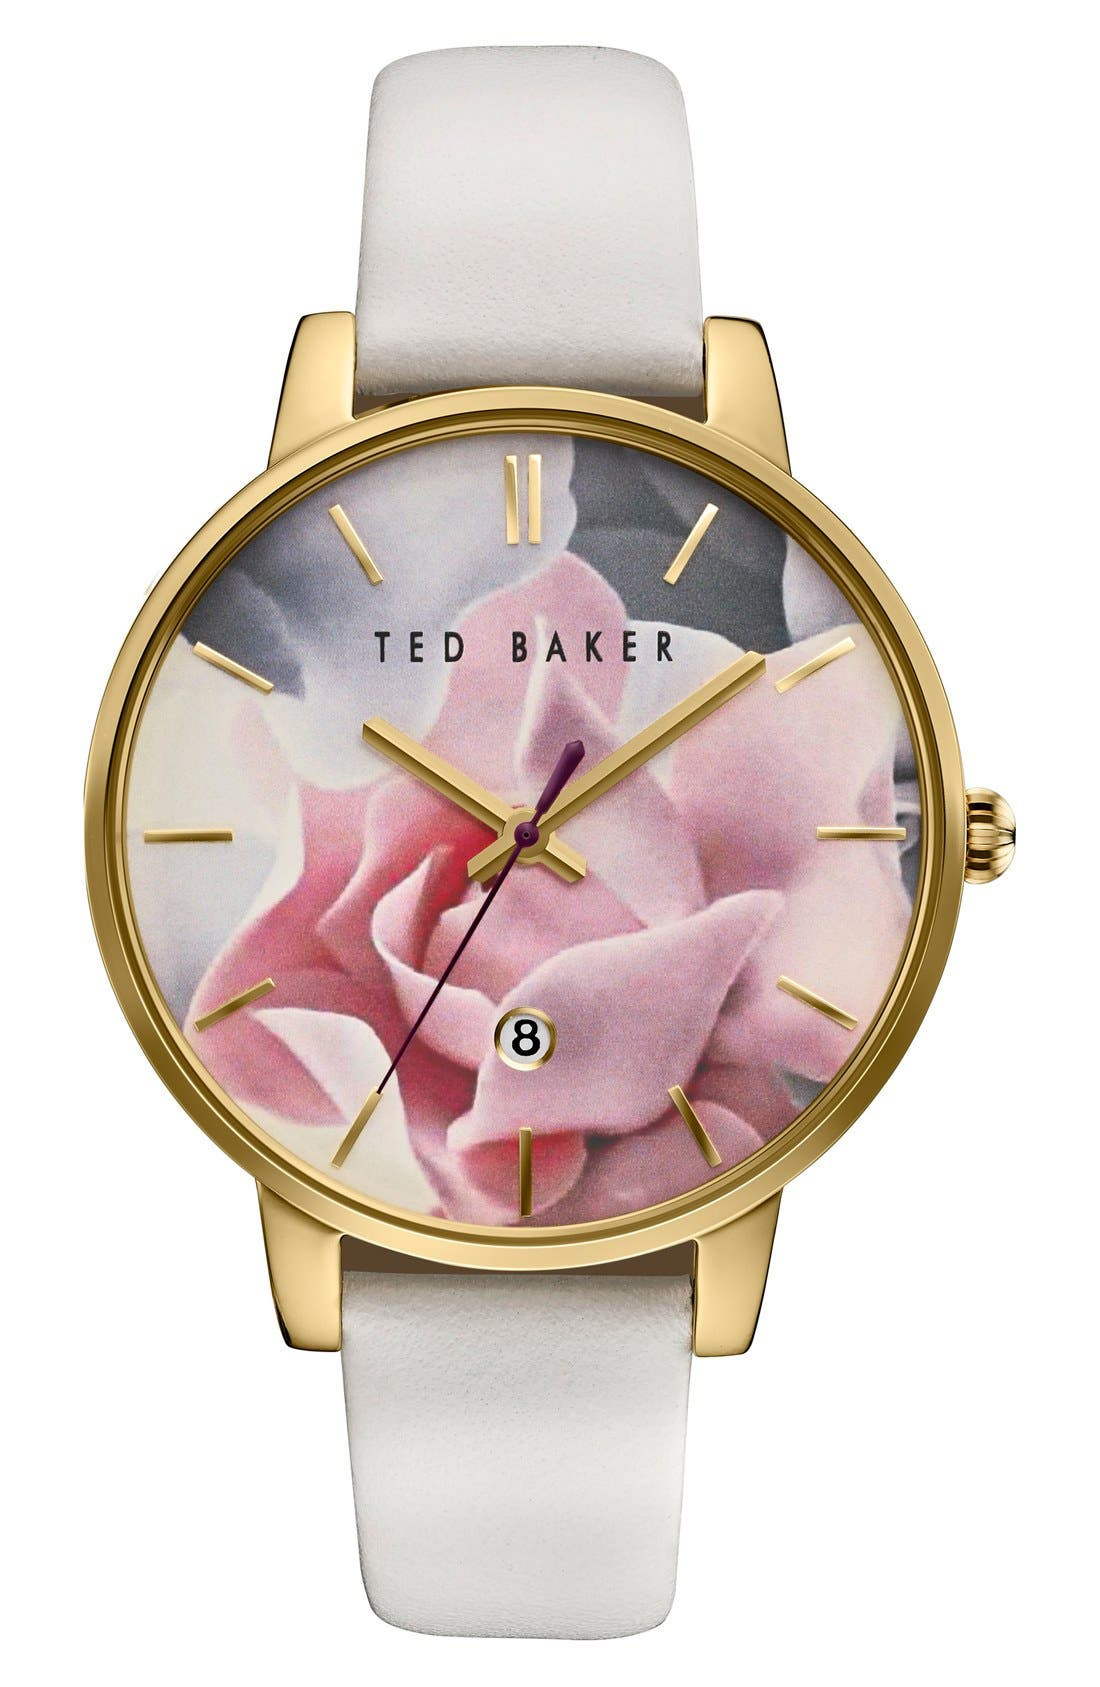 TED BAKER LONDON, Leather Strap Watch, 40mm, Main thumbnail 1, color, 100